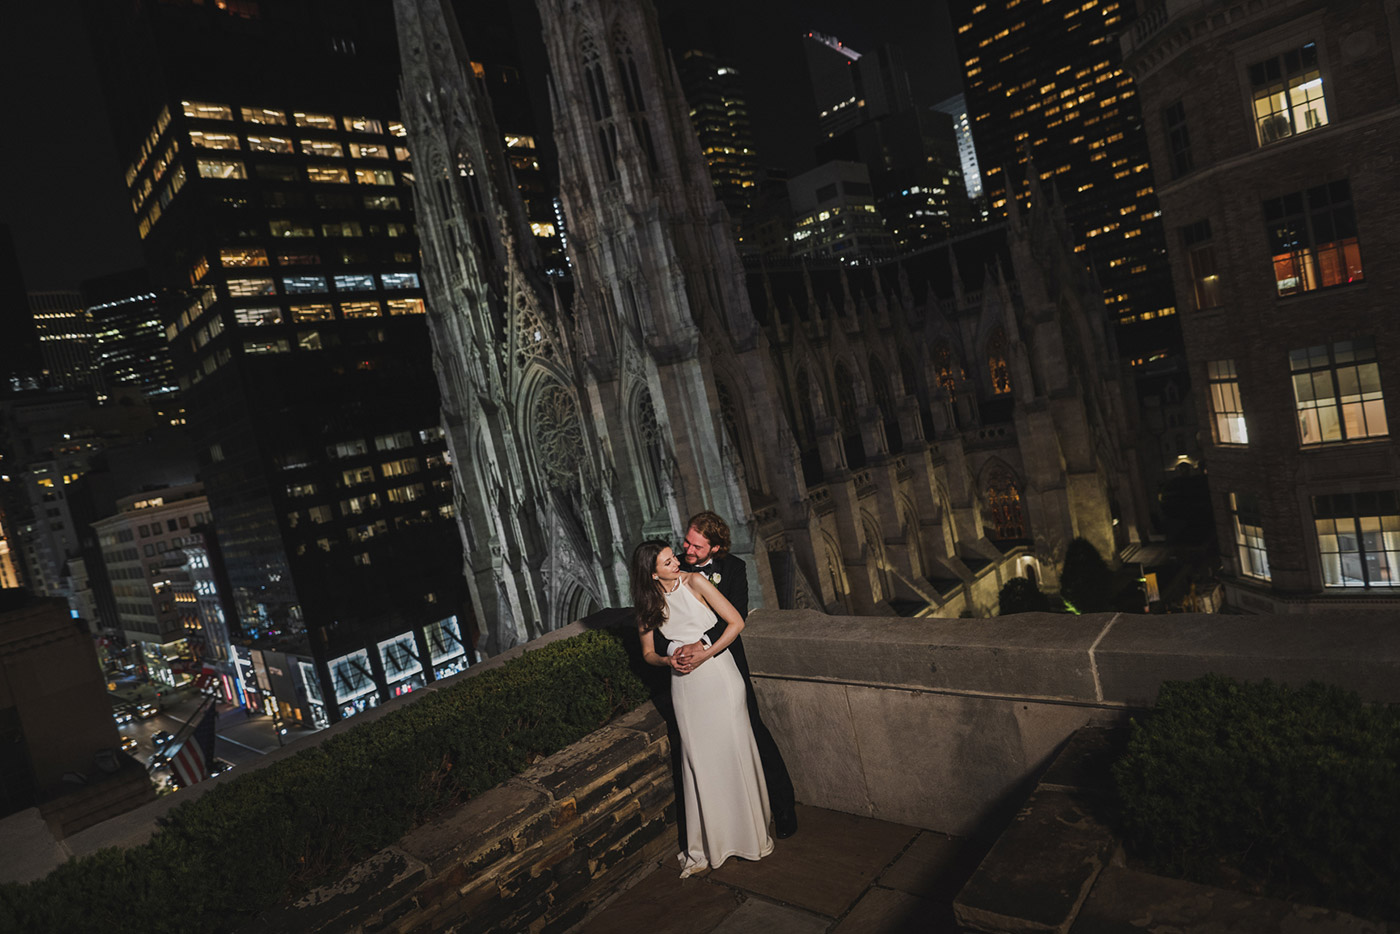 Portrait of bride and groom at 620 loft & garden with St. Patrick's in the background.